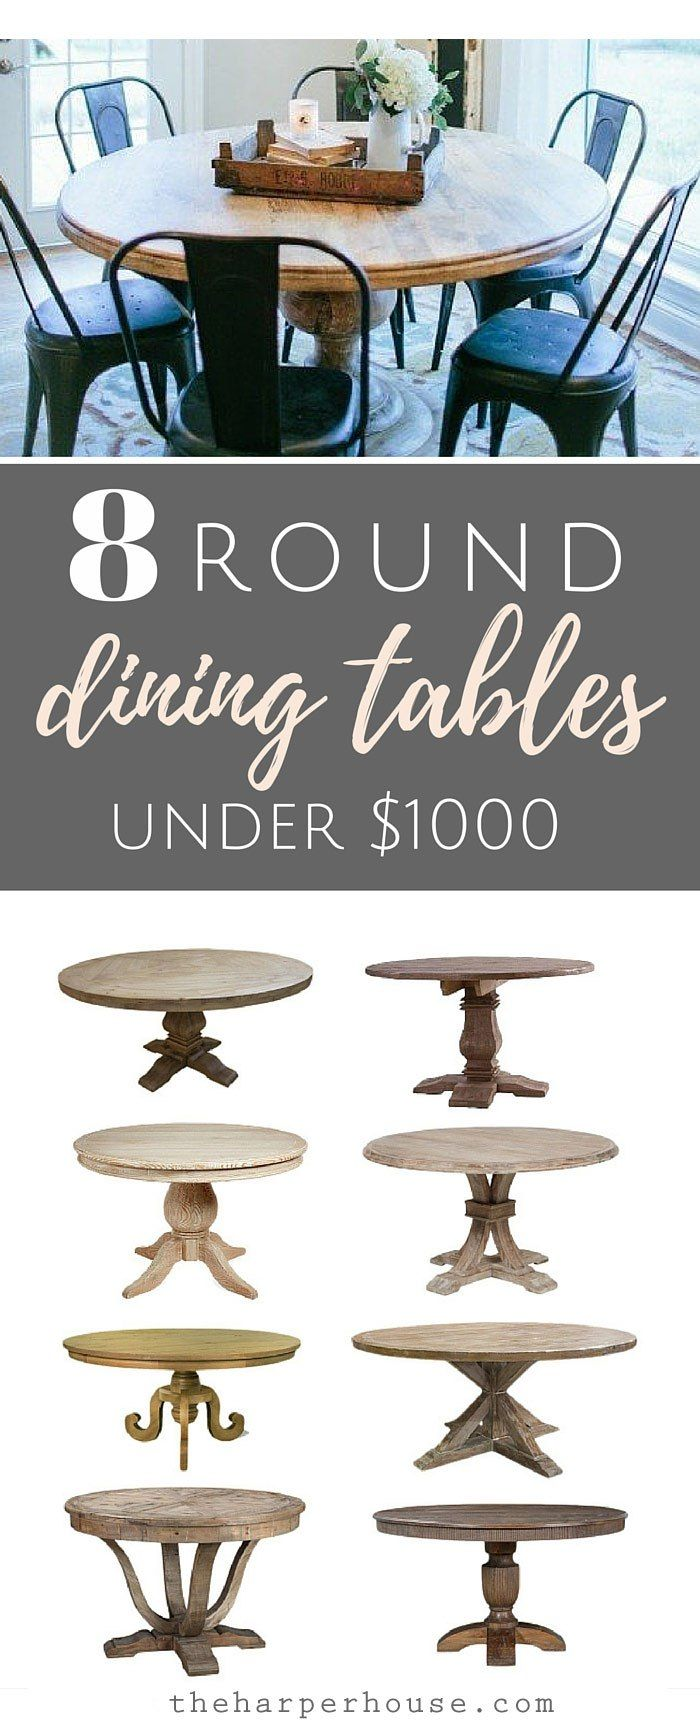 round dining tables round kitchen tables Fixer Upper round dining tables and where to find affordable options for under theharperhouse